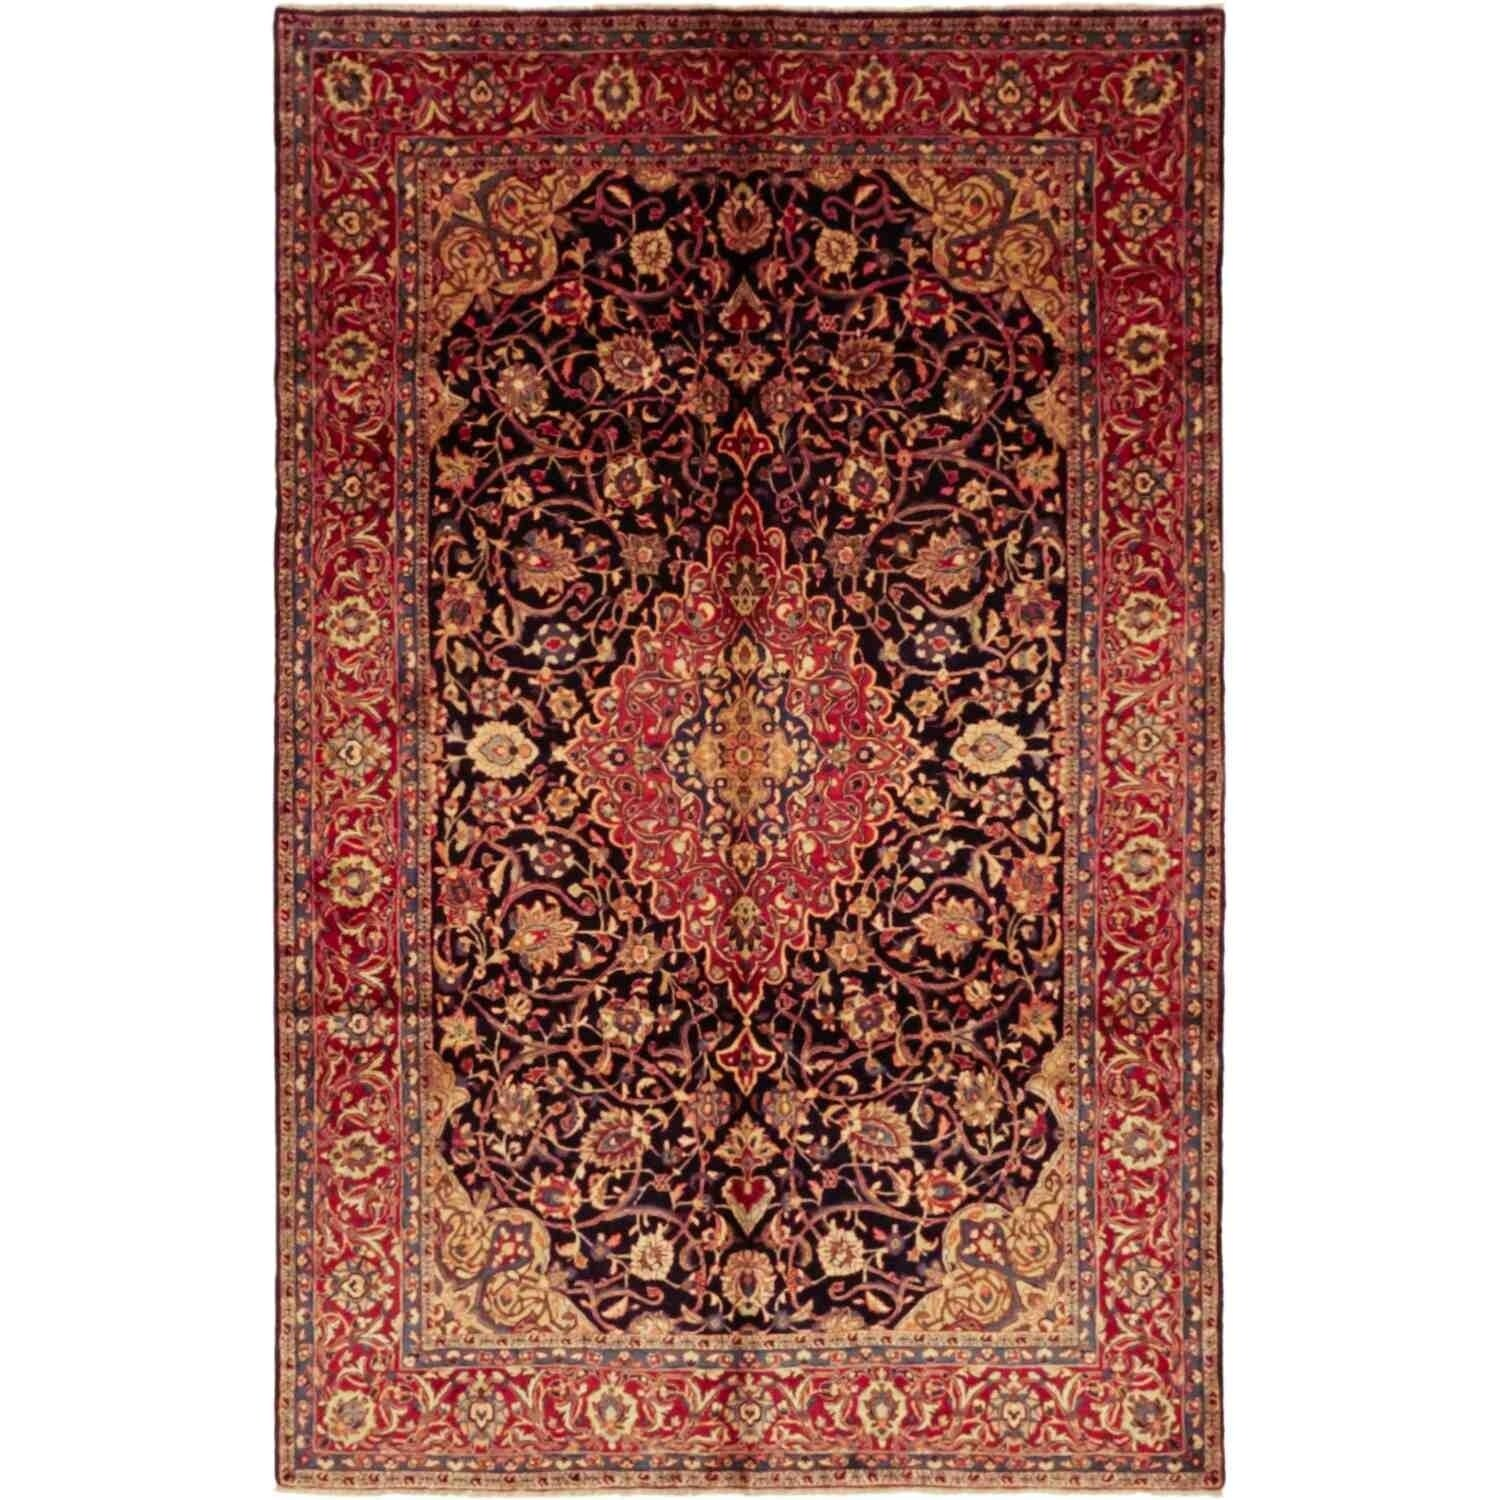 Buy Unique One Of A Kind Area Rugs Online At Overstock Our